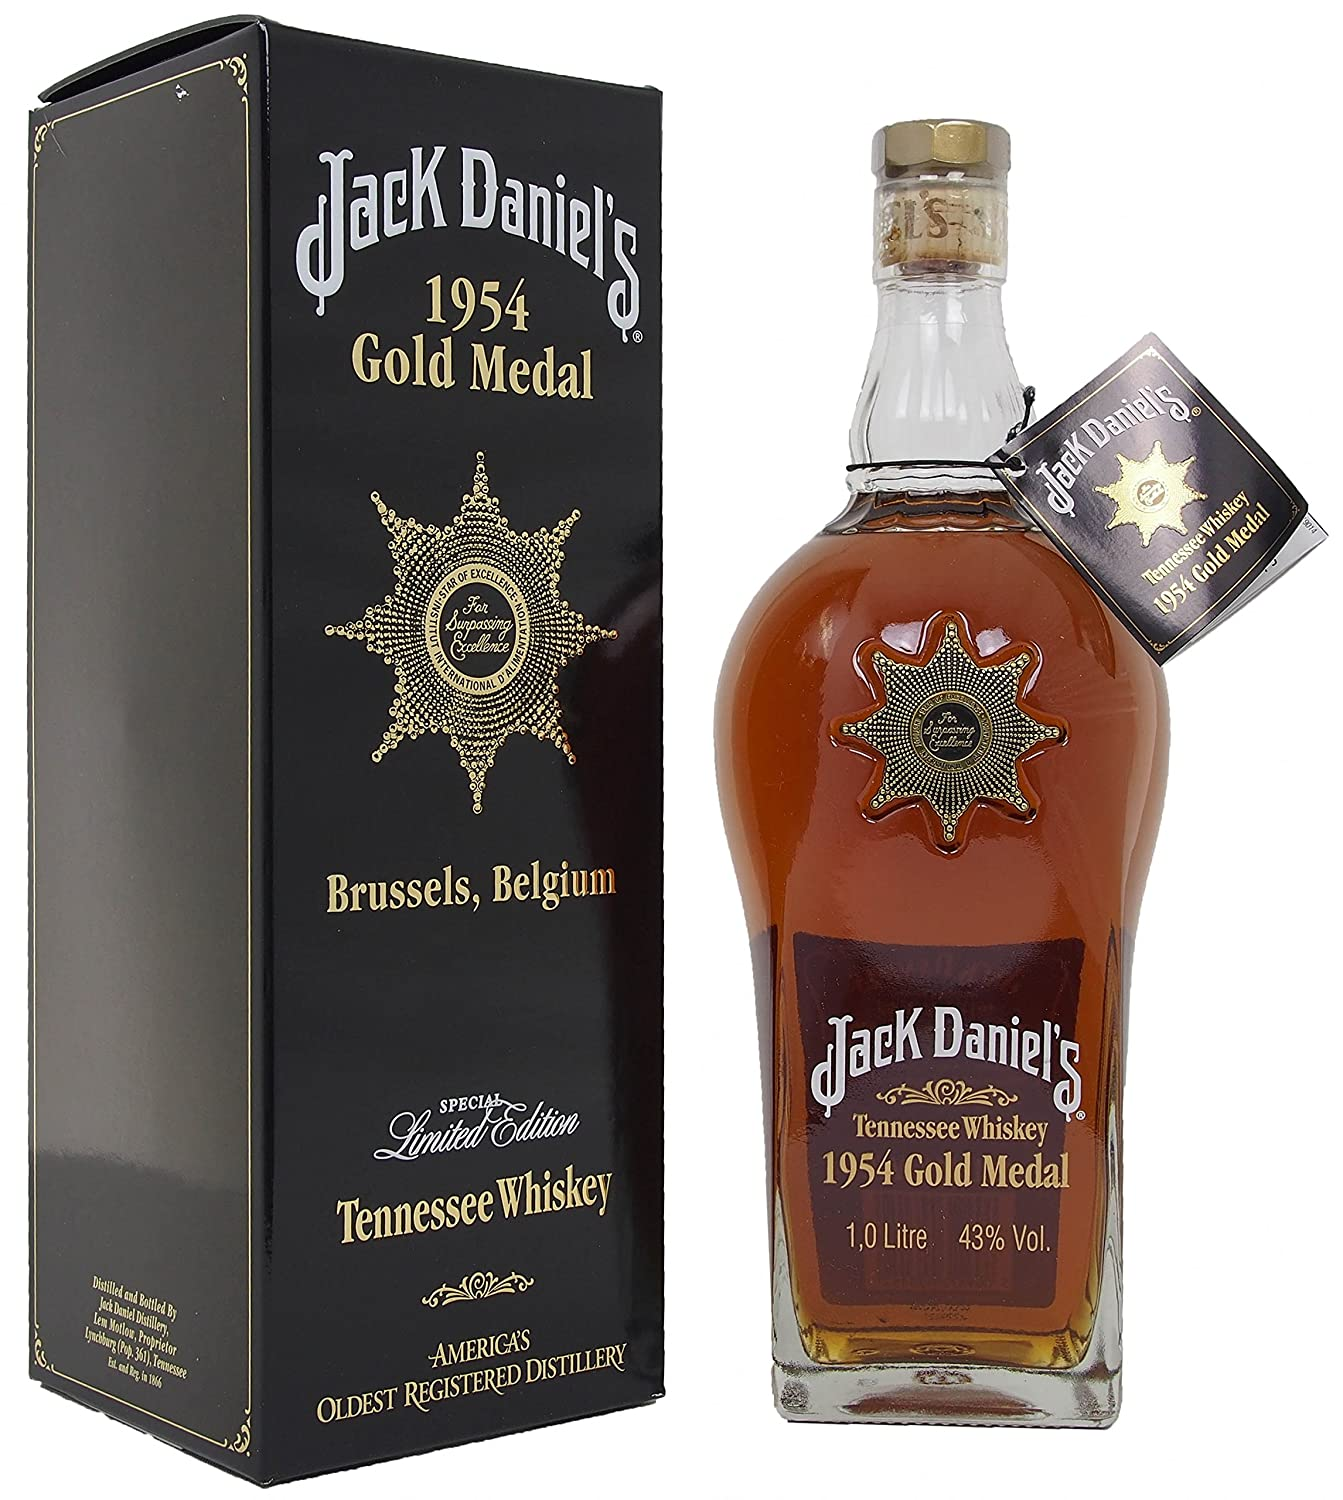 Jack Daniels 1954 Gold Medal Tennessee Whisky, 100 cl: Amazon.co.uk ...